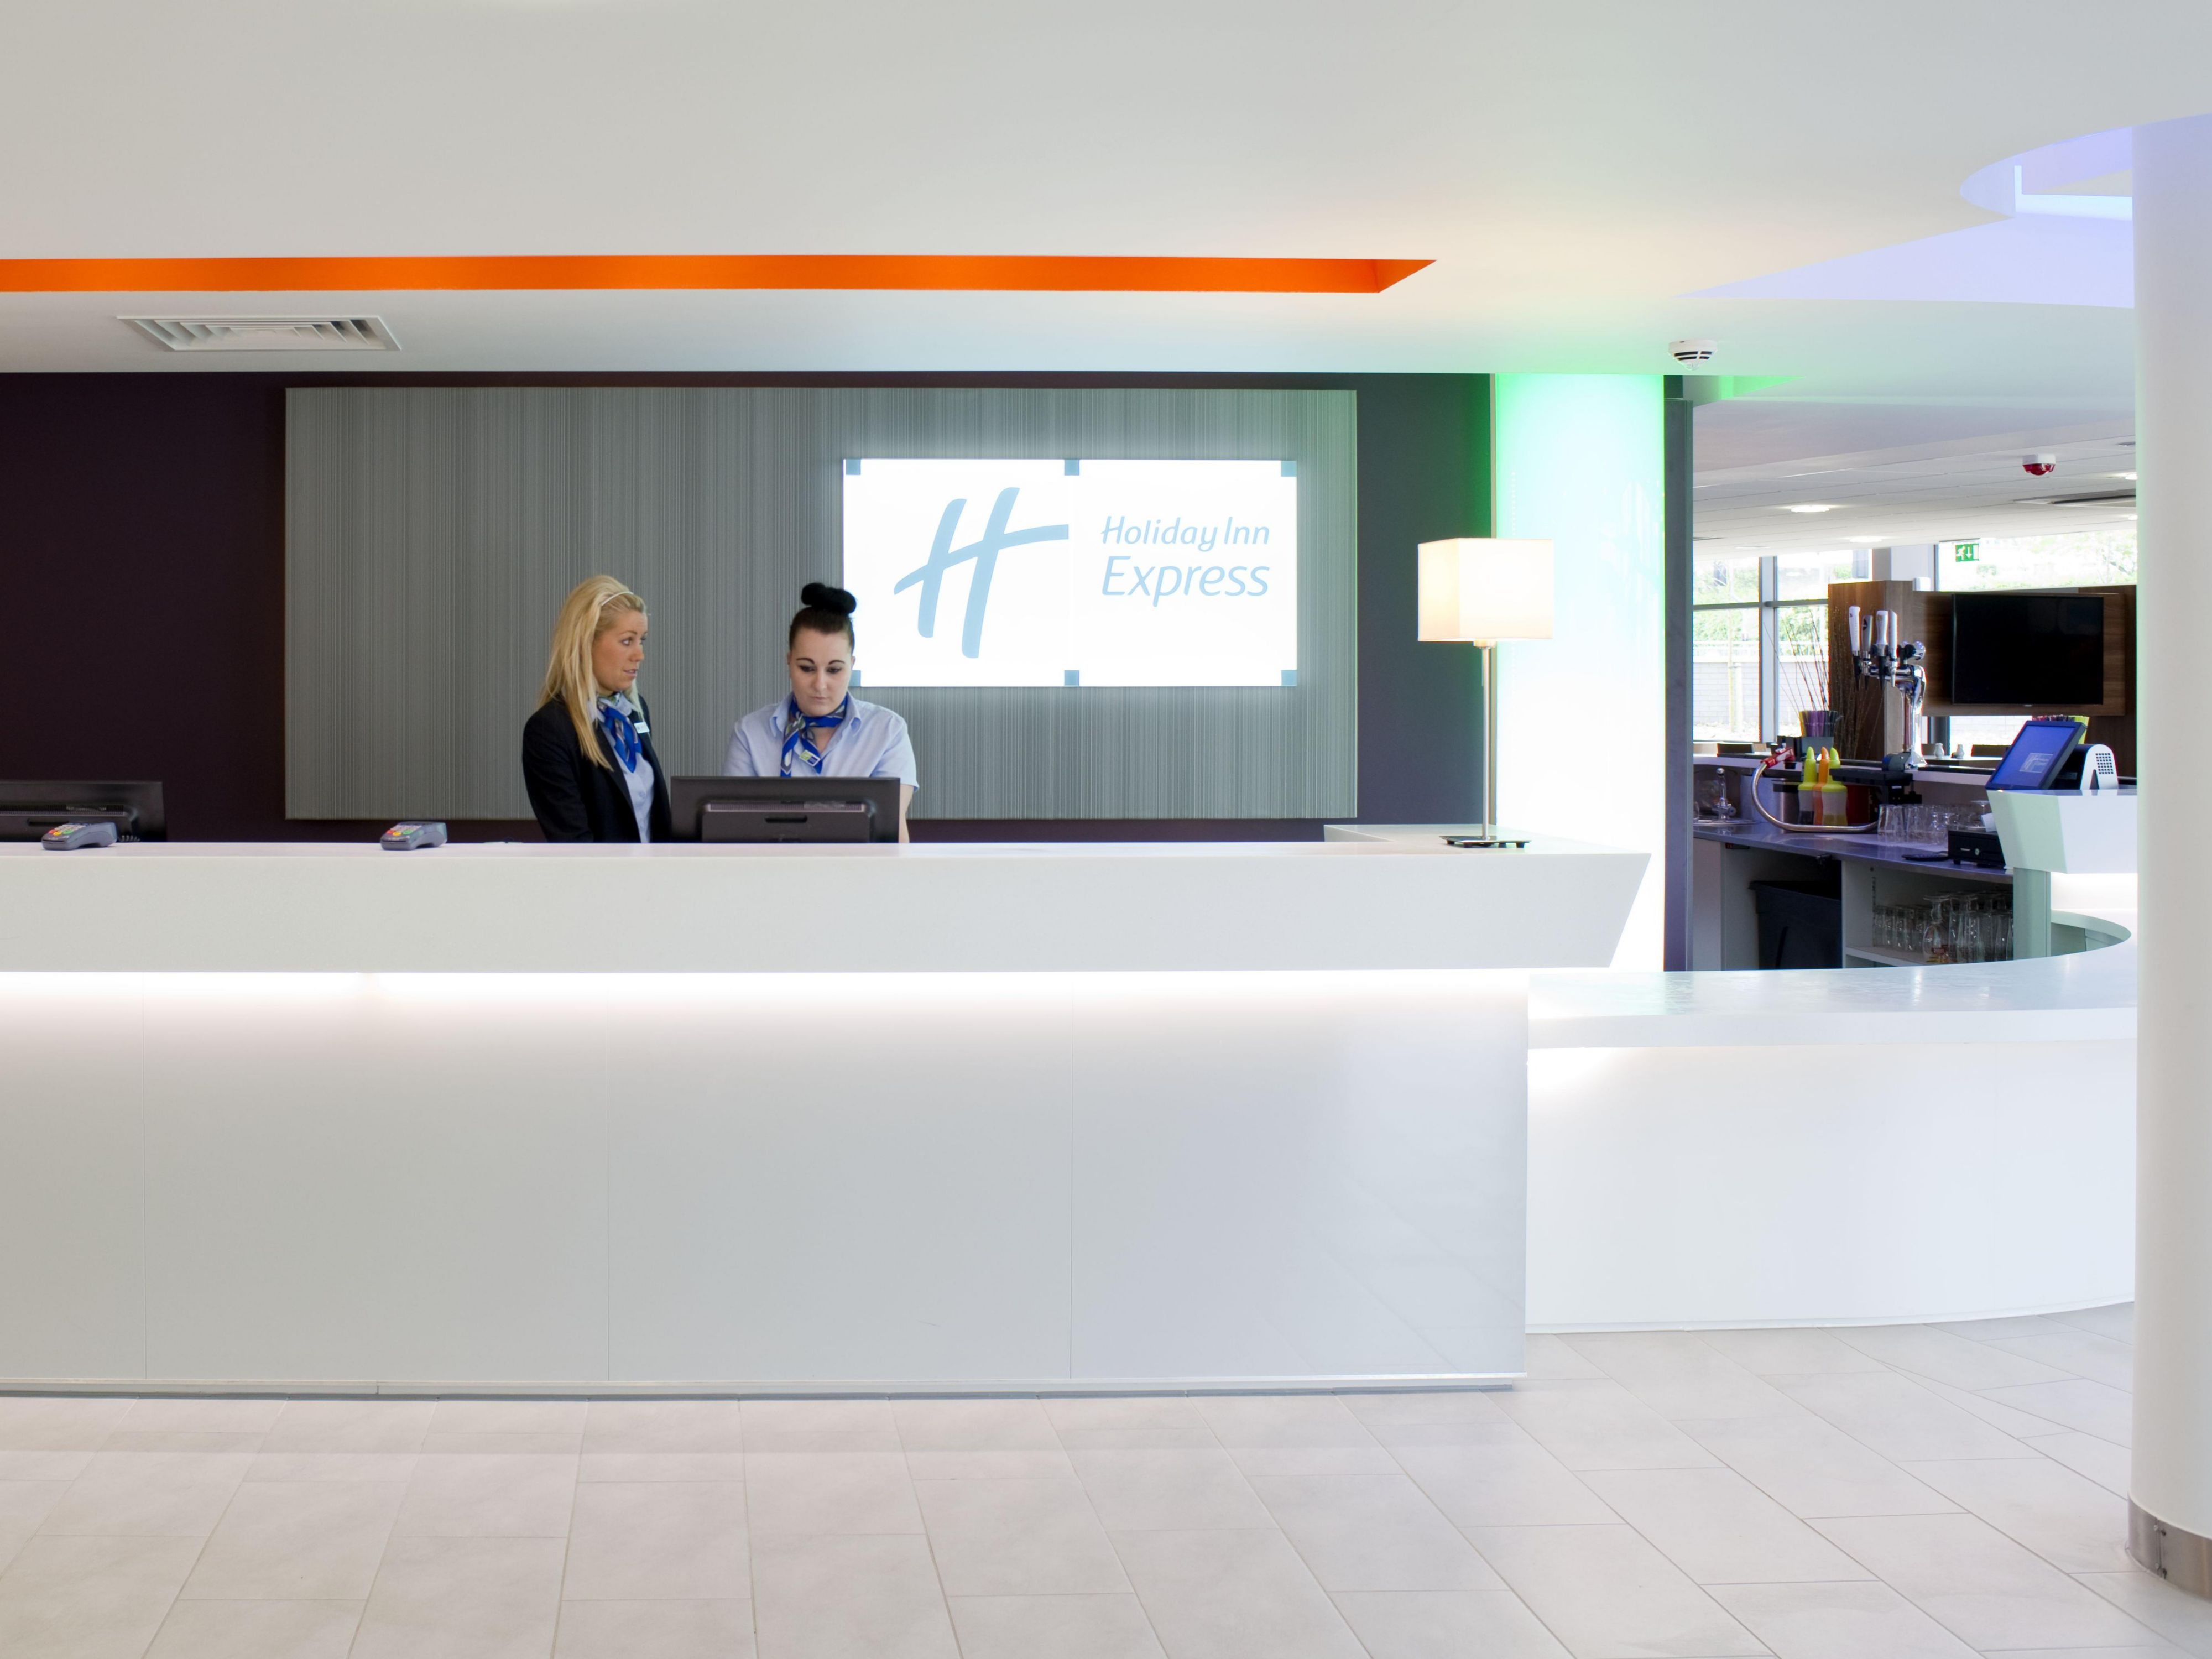 A warm welcome to Holiday Inn Express Dunstable